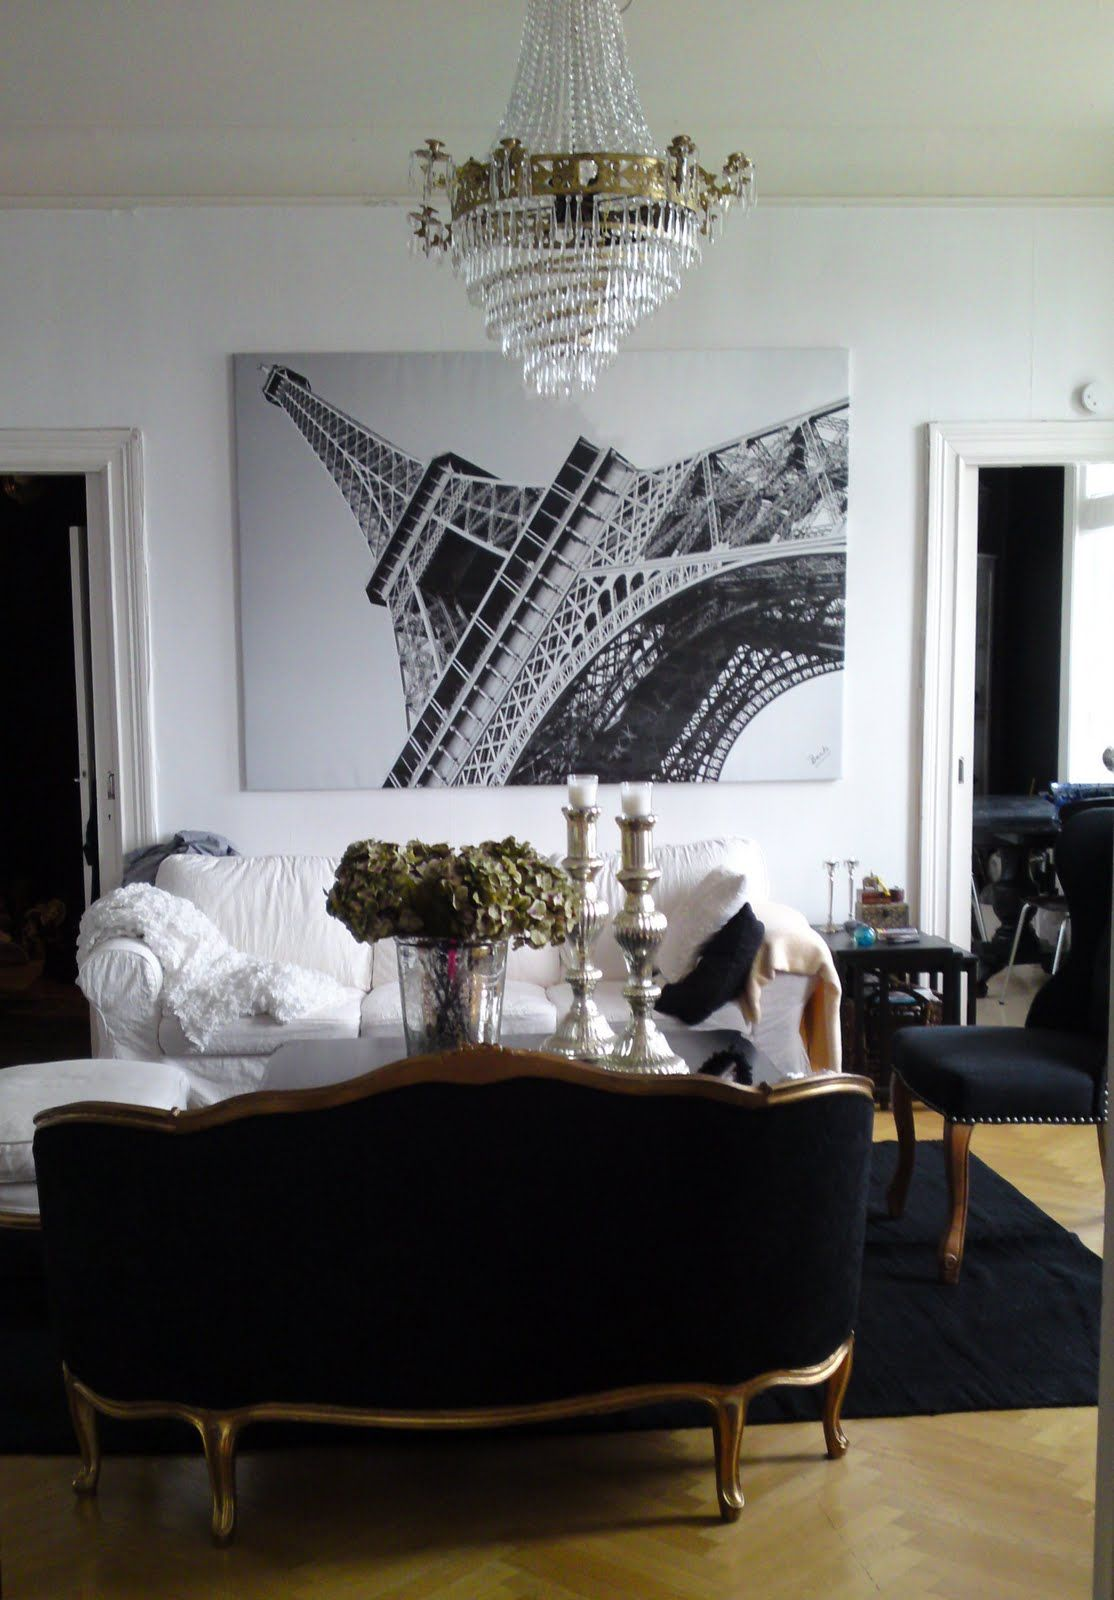 My Home In Paris wall decor for my home..pick our fav location a pivotal